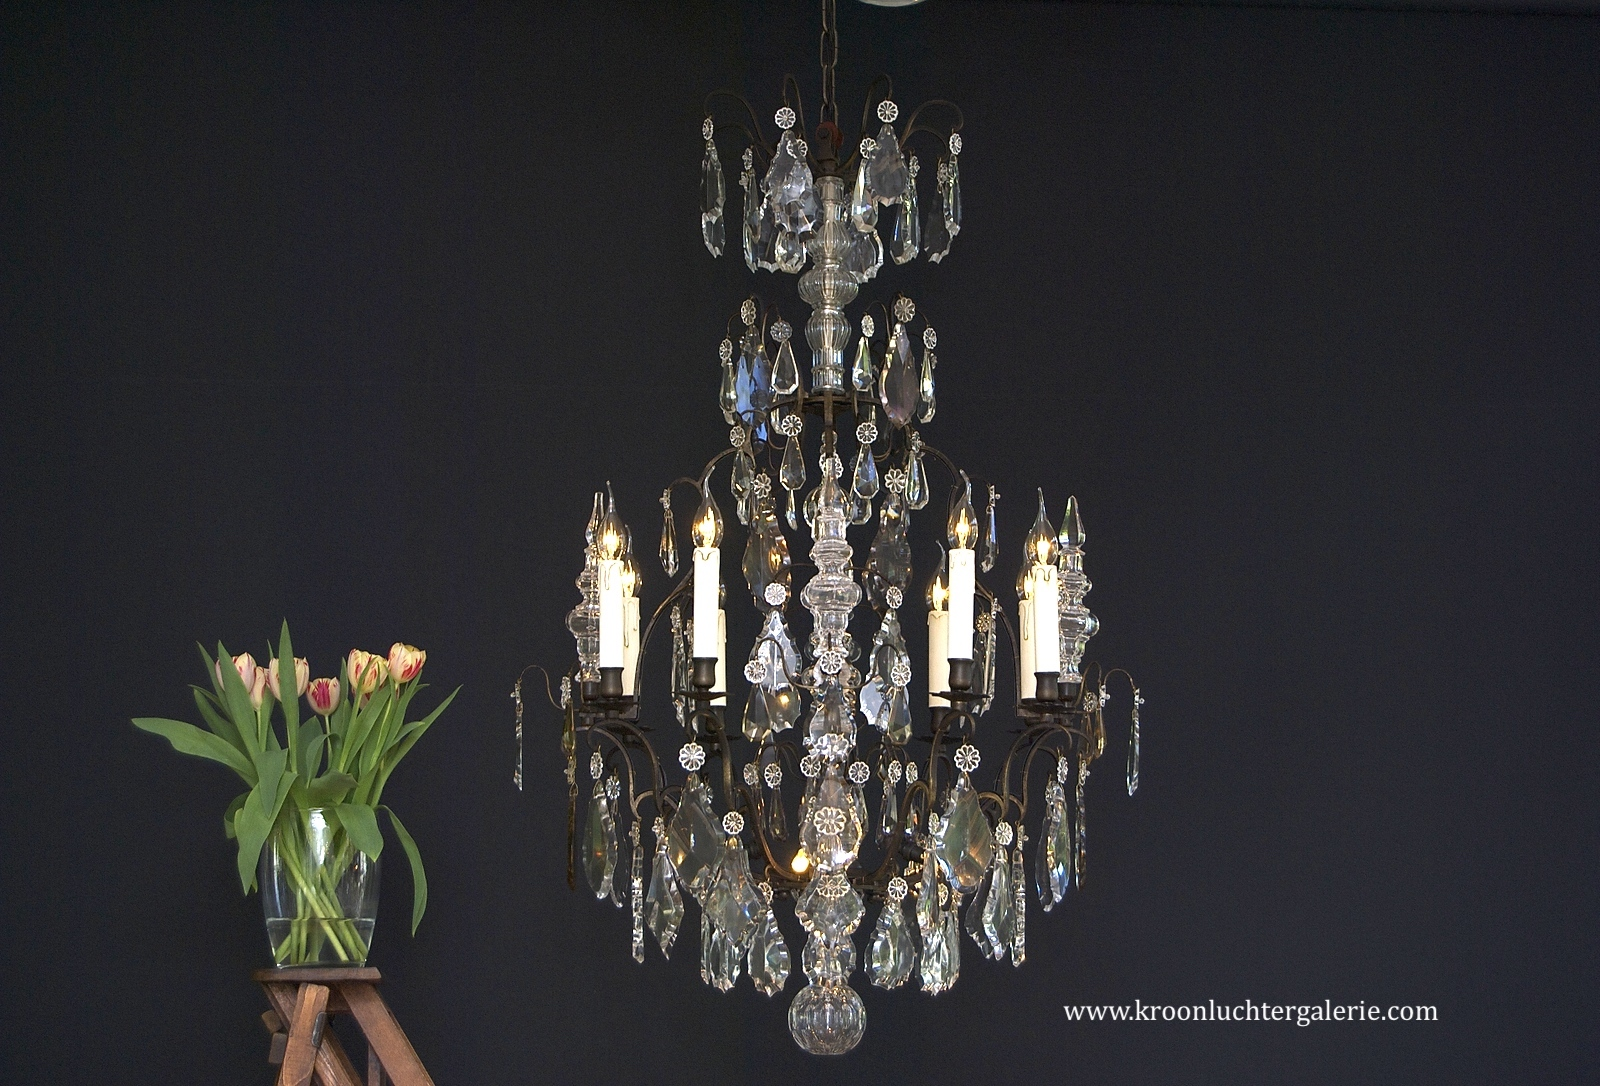 A wonderful early 20th c. French chandelier with dark patina